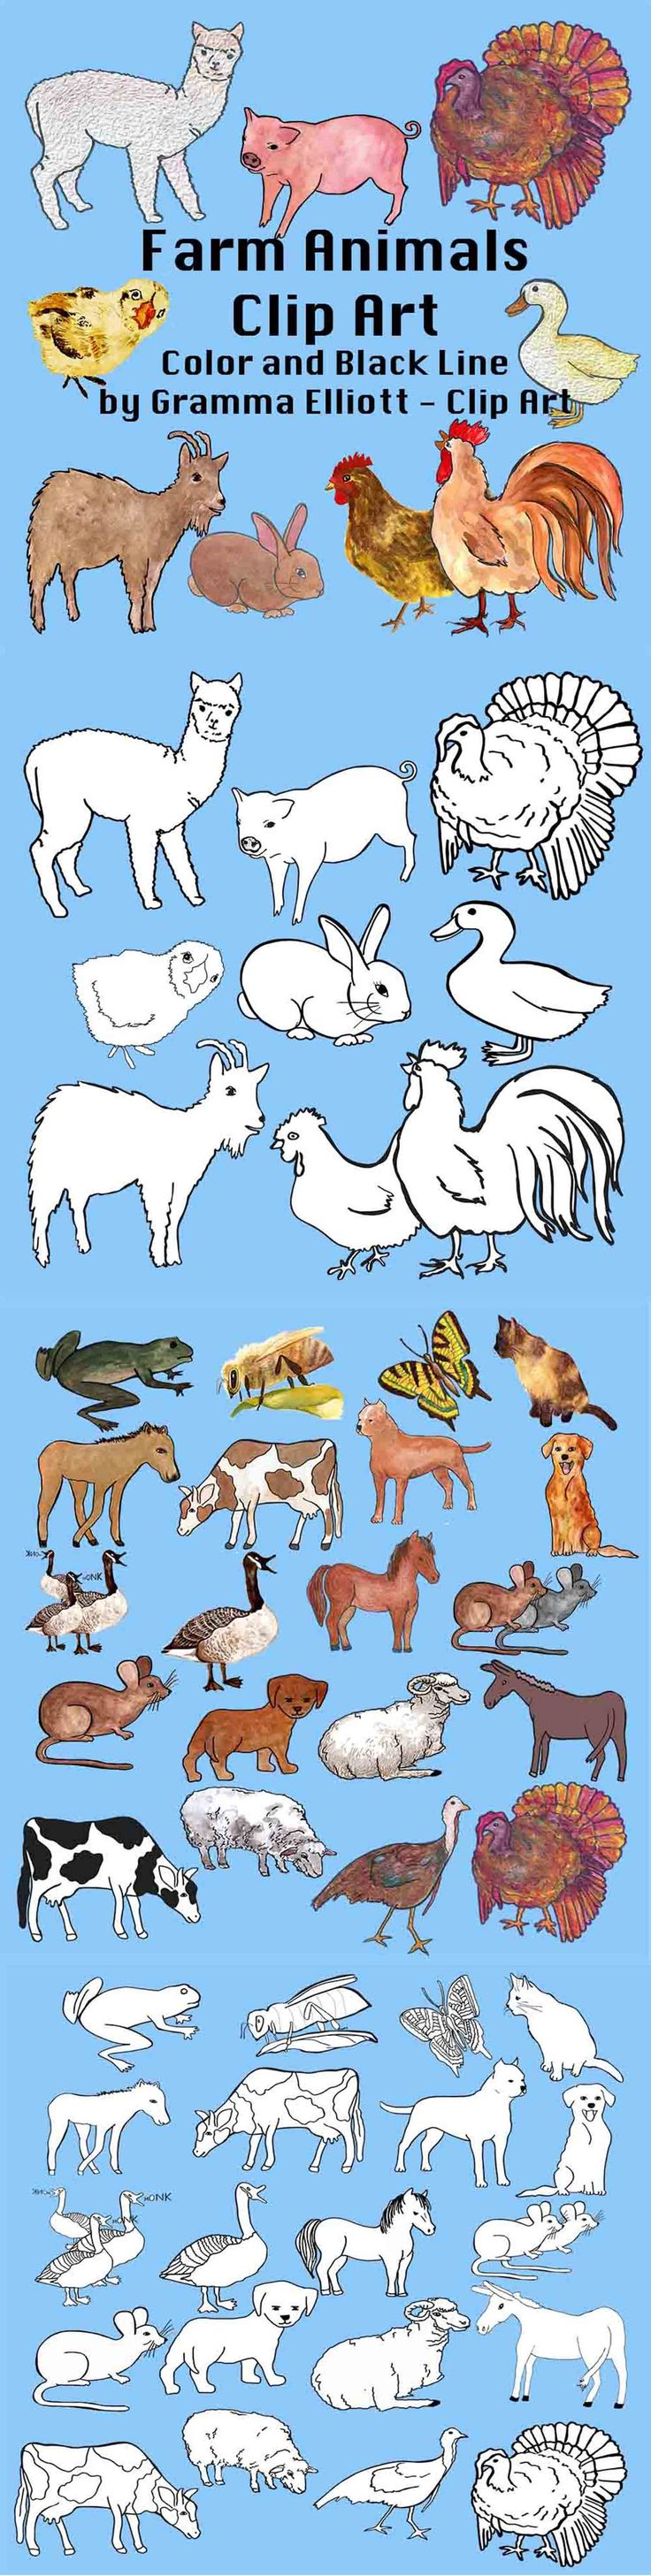 Puppy clipart 1 color picture royalty free library 1000+ images about Gramma Elliott - Clip Art on Pinterest ... picture royalty free library